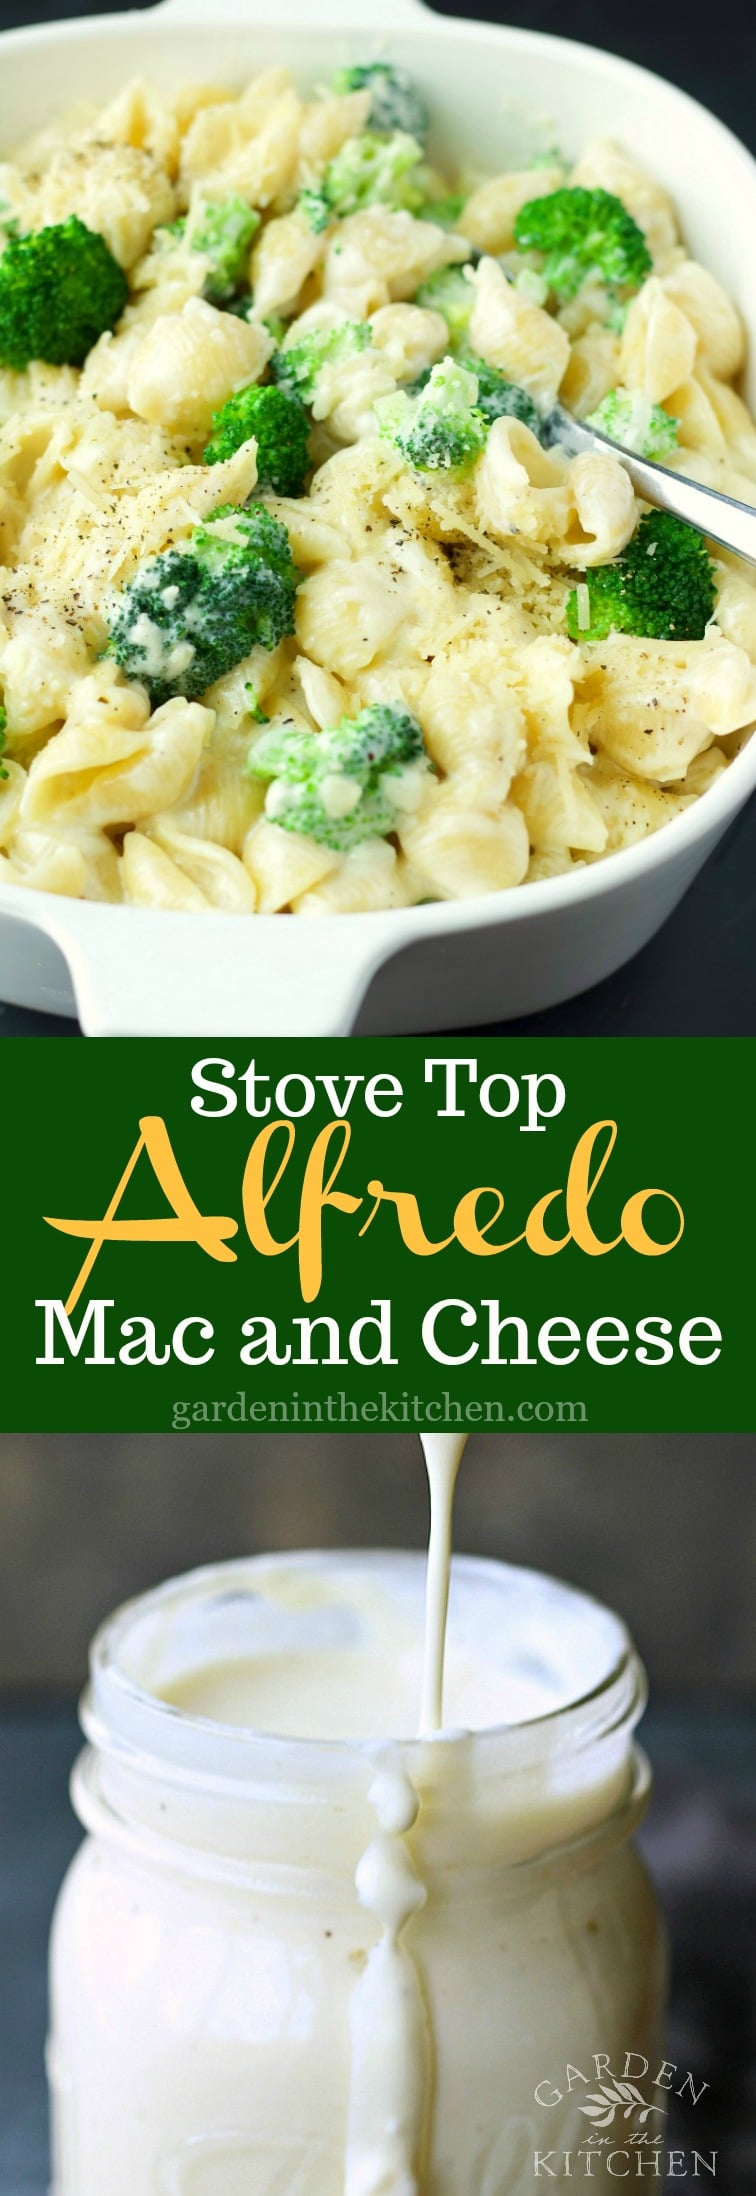 Stove Top Creamy Alfredo Mac And Cheese